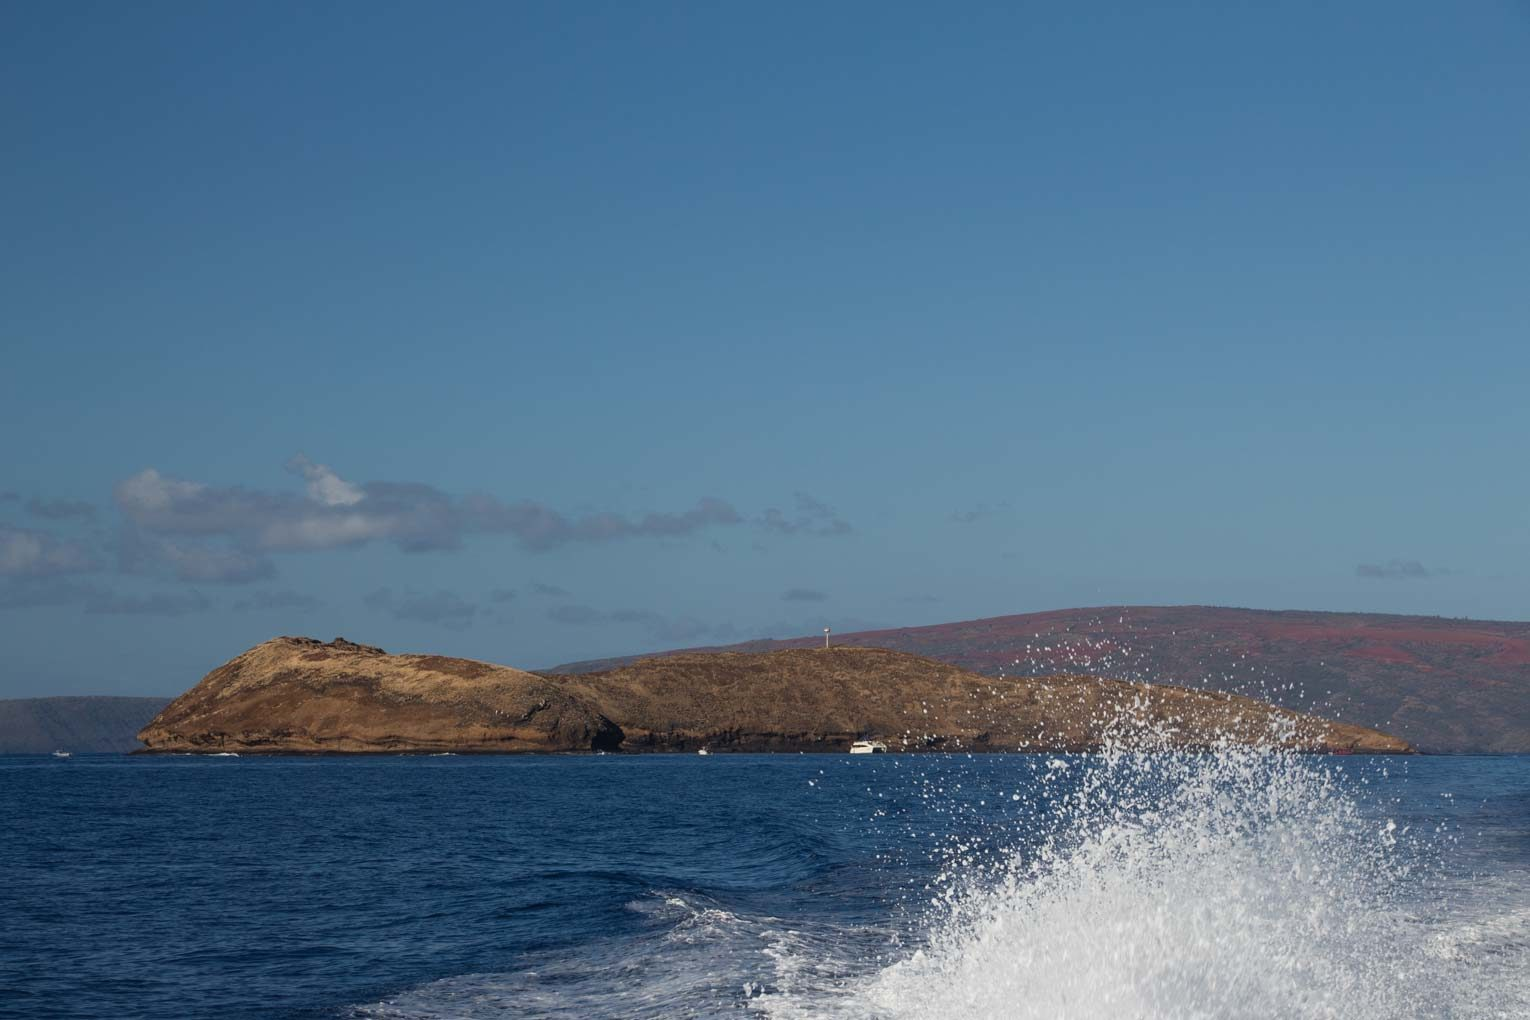 Maui Hawaii – Bootsfahrt zum Molokini Crater | SOMEWHERE ELSE